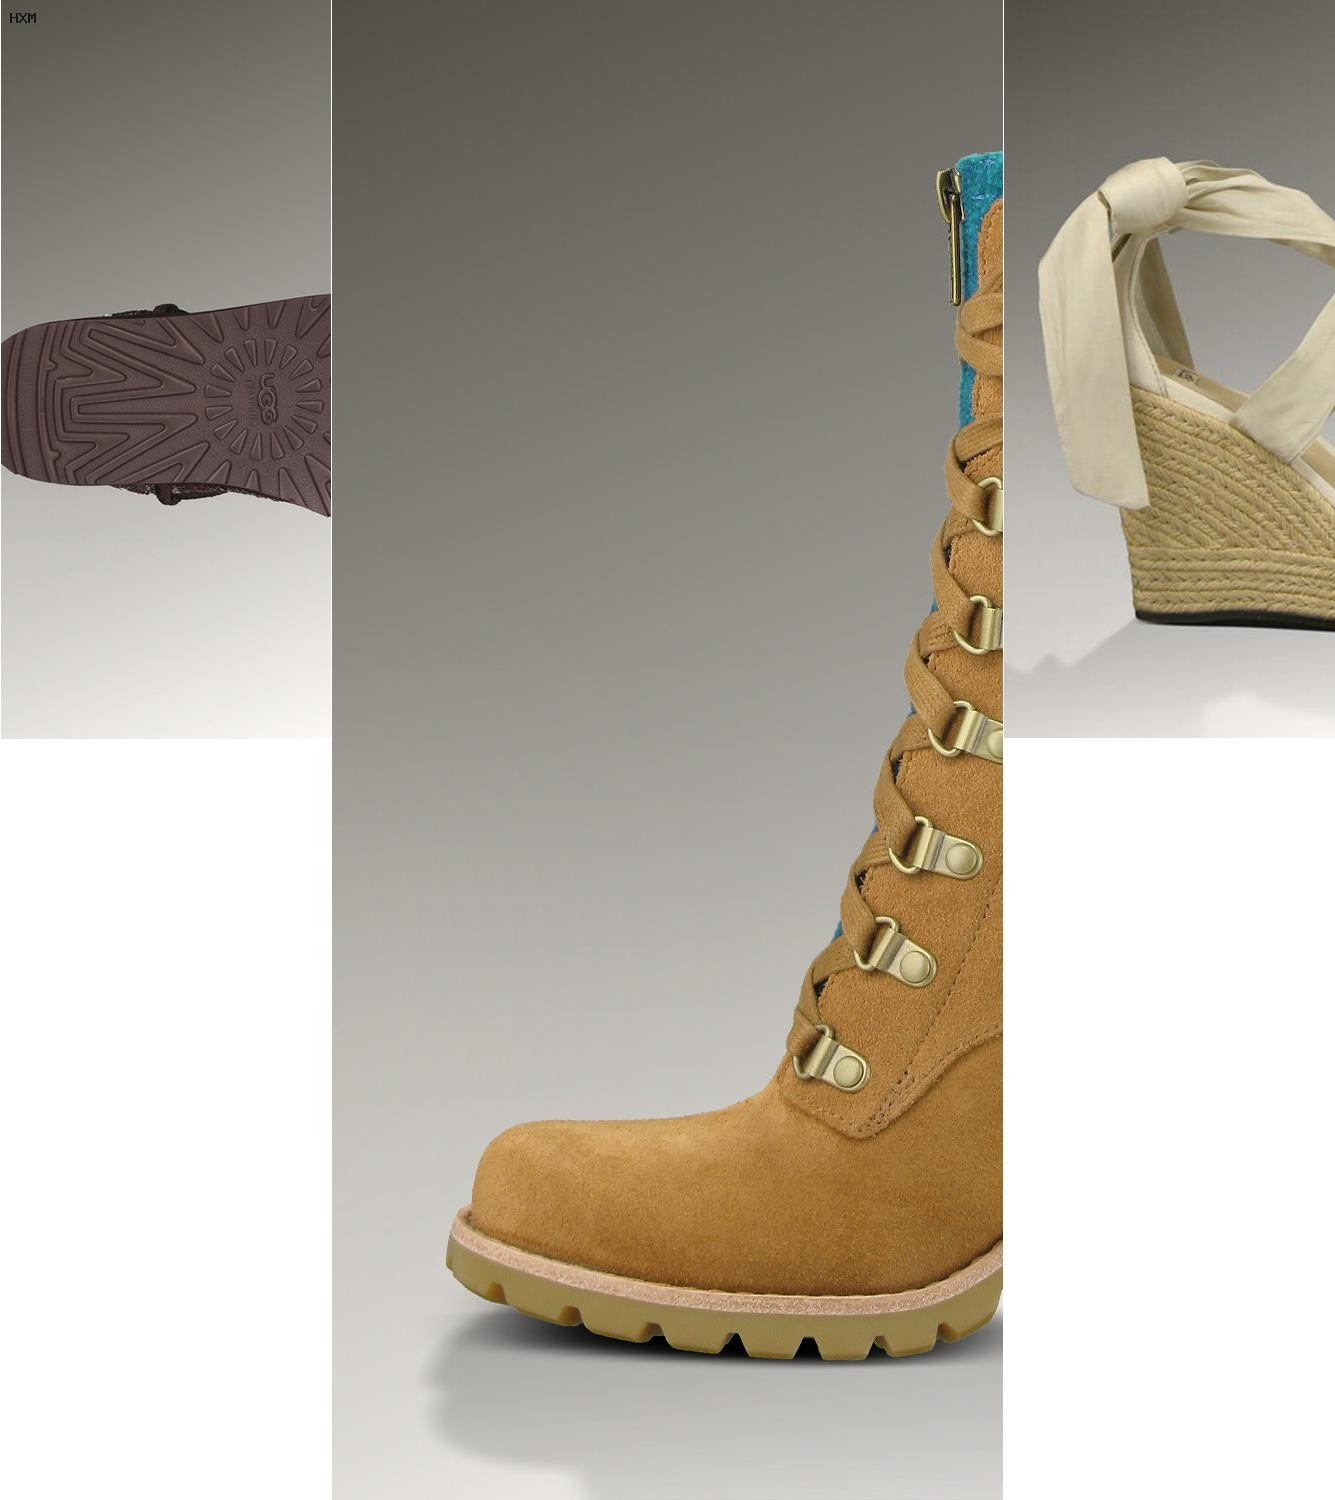 cost of ugg boots in america